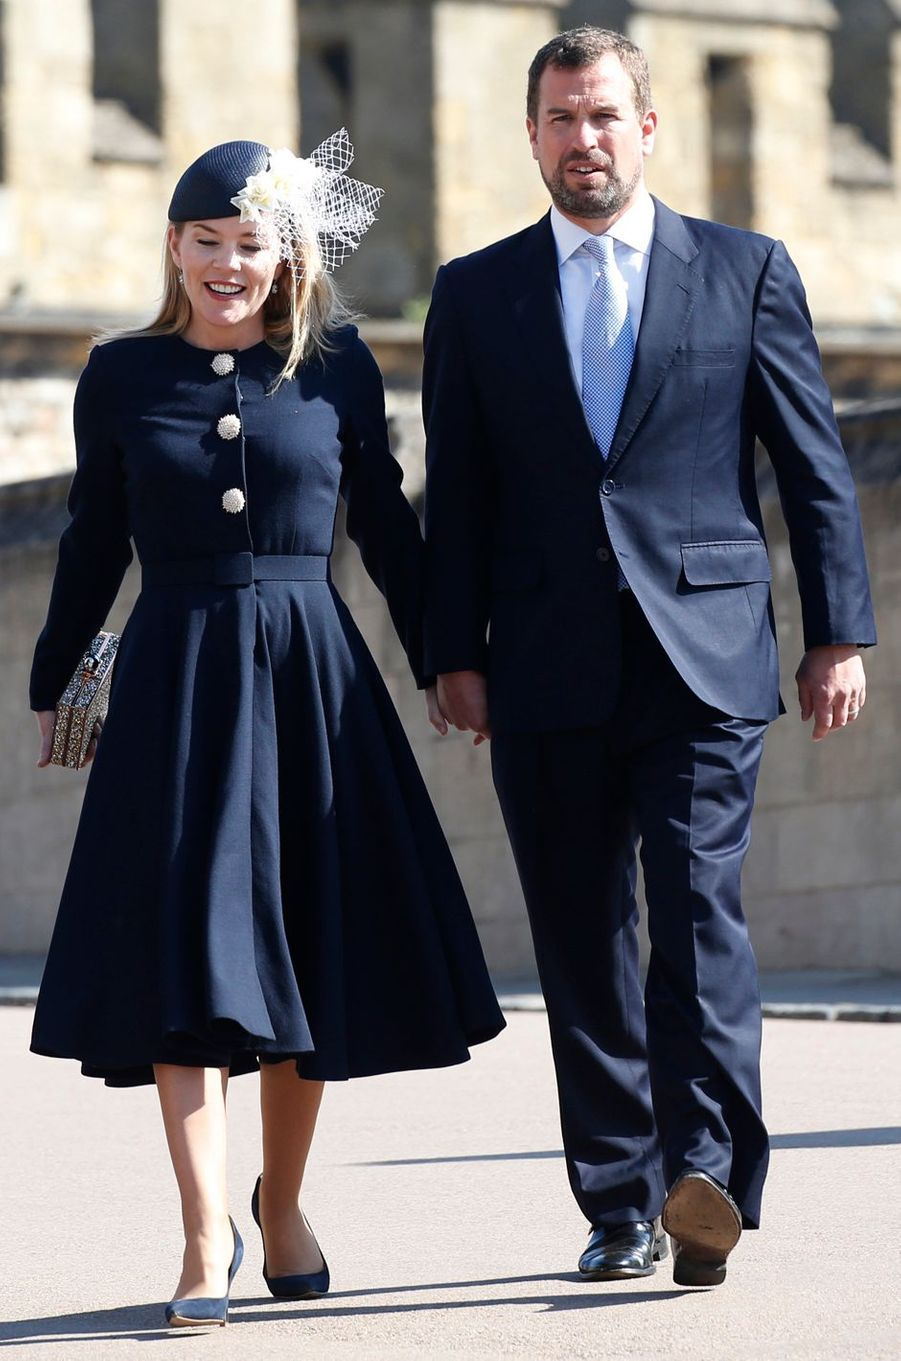 Autumn Phillips à Windsor, le 21 avril 2019